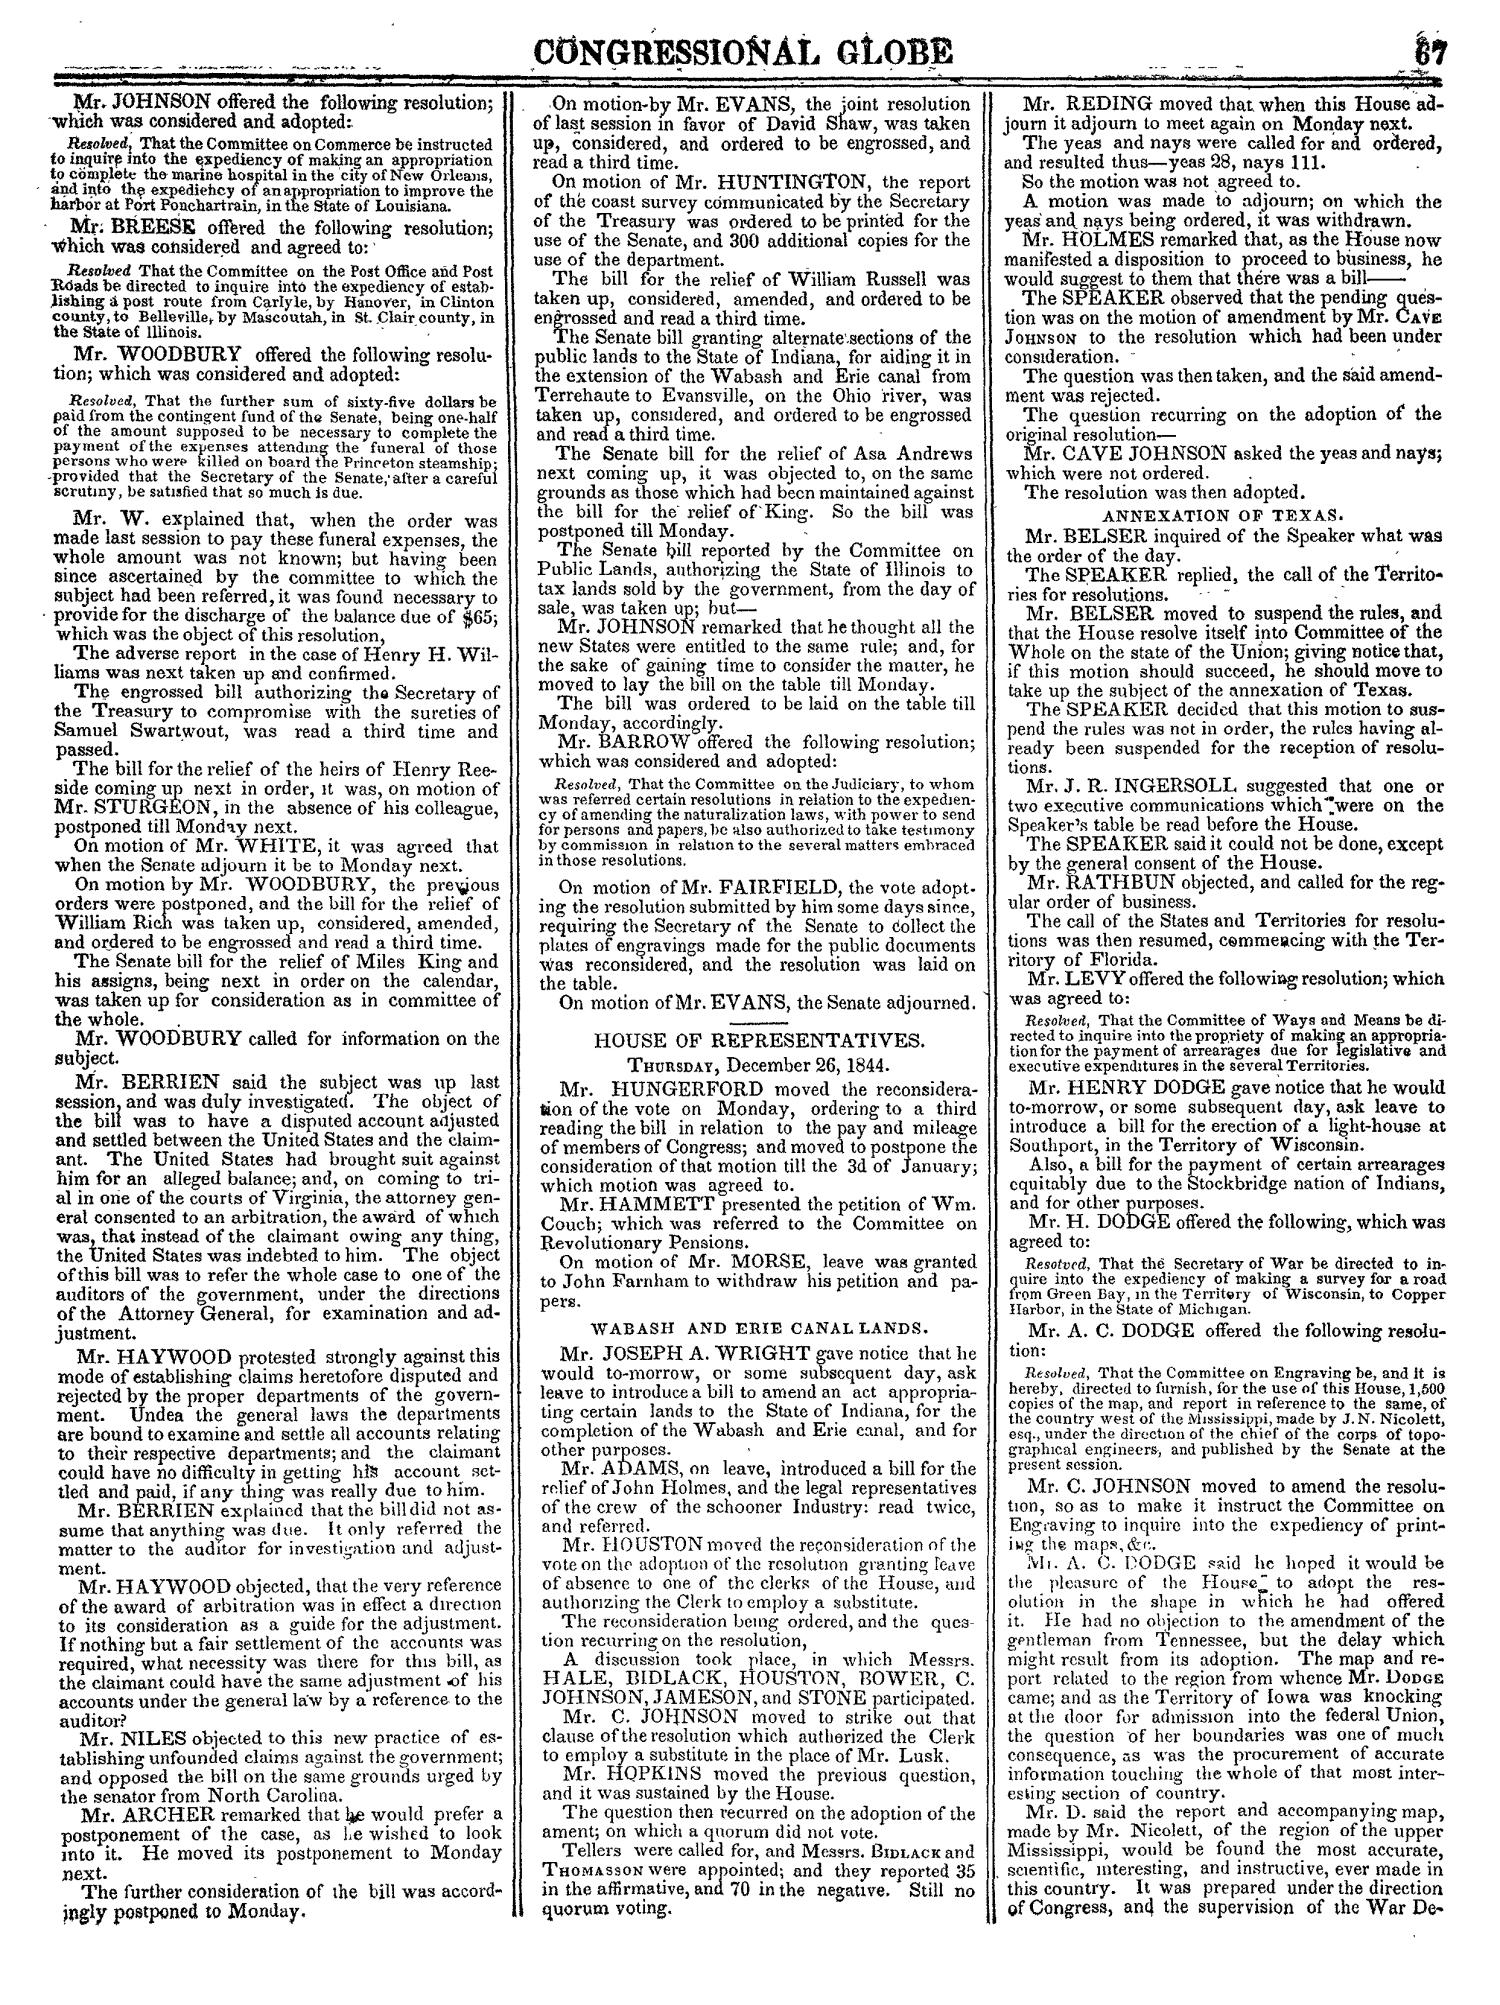 The Congressional Globe, Volume 14: Twenty-Eighth Congress, Second Session                                                                                                      67